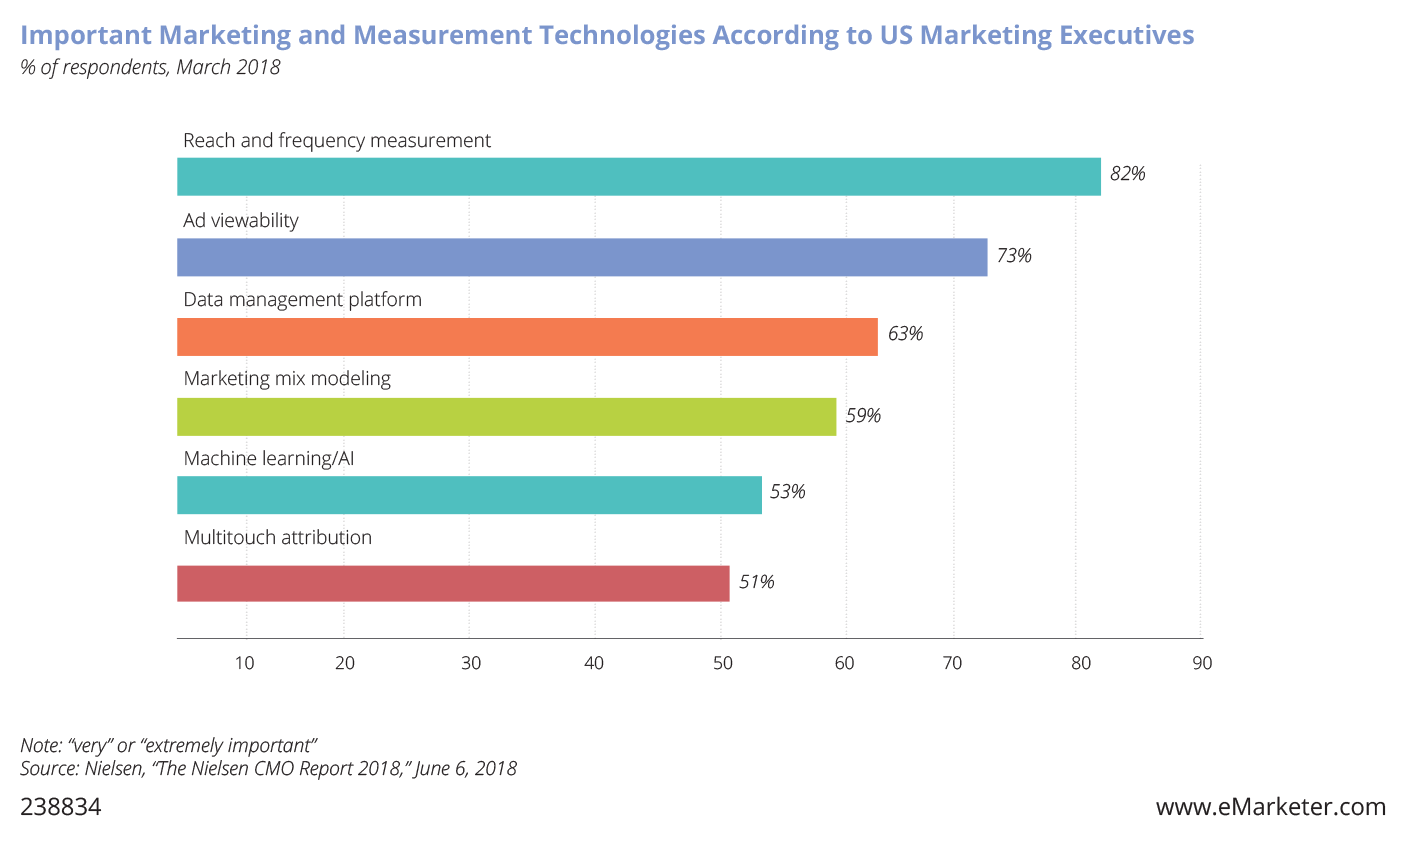 Chart: Important Marketing and Measurement Technologies According to U.S. Marketing Executives